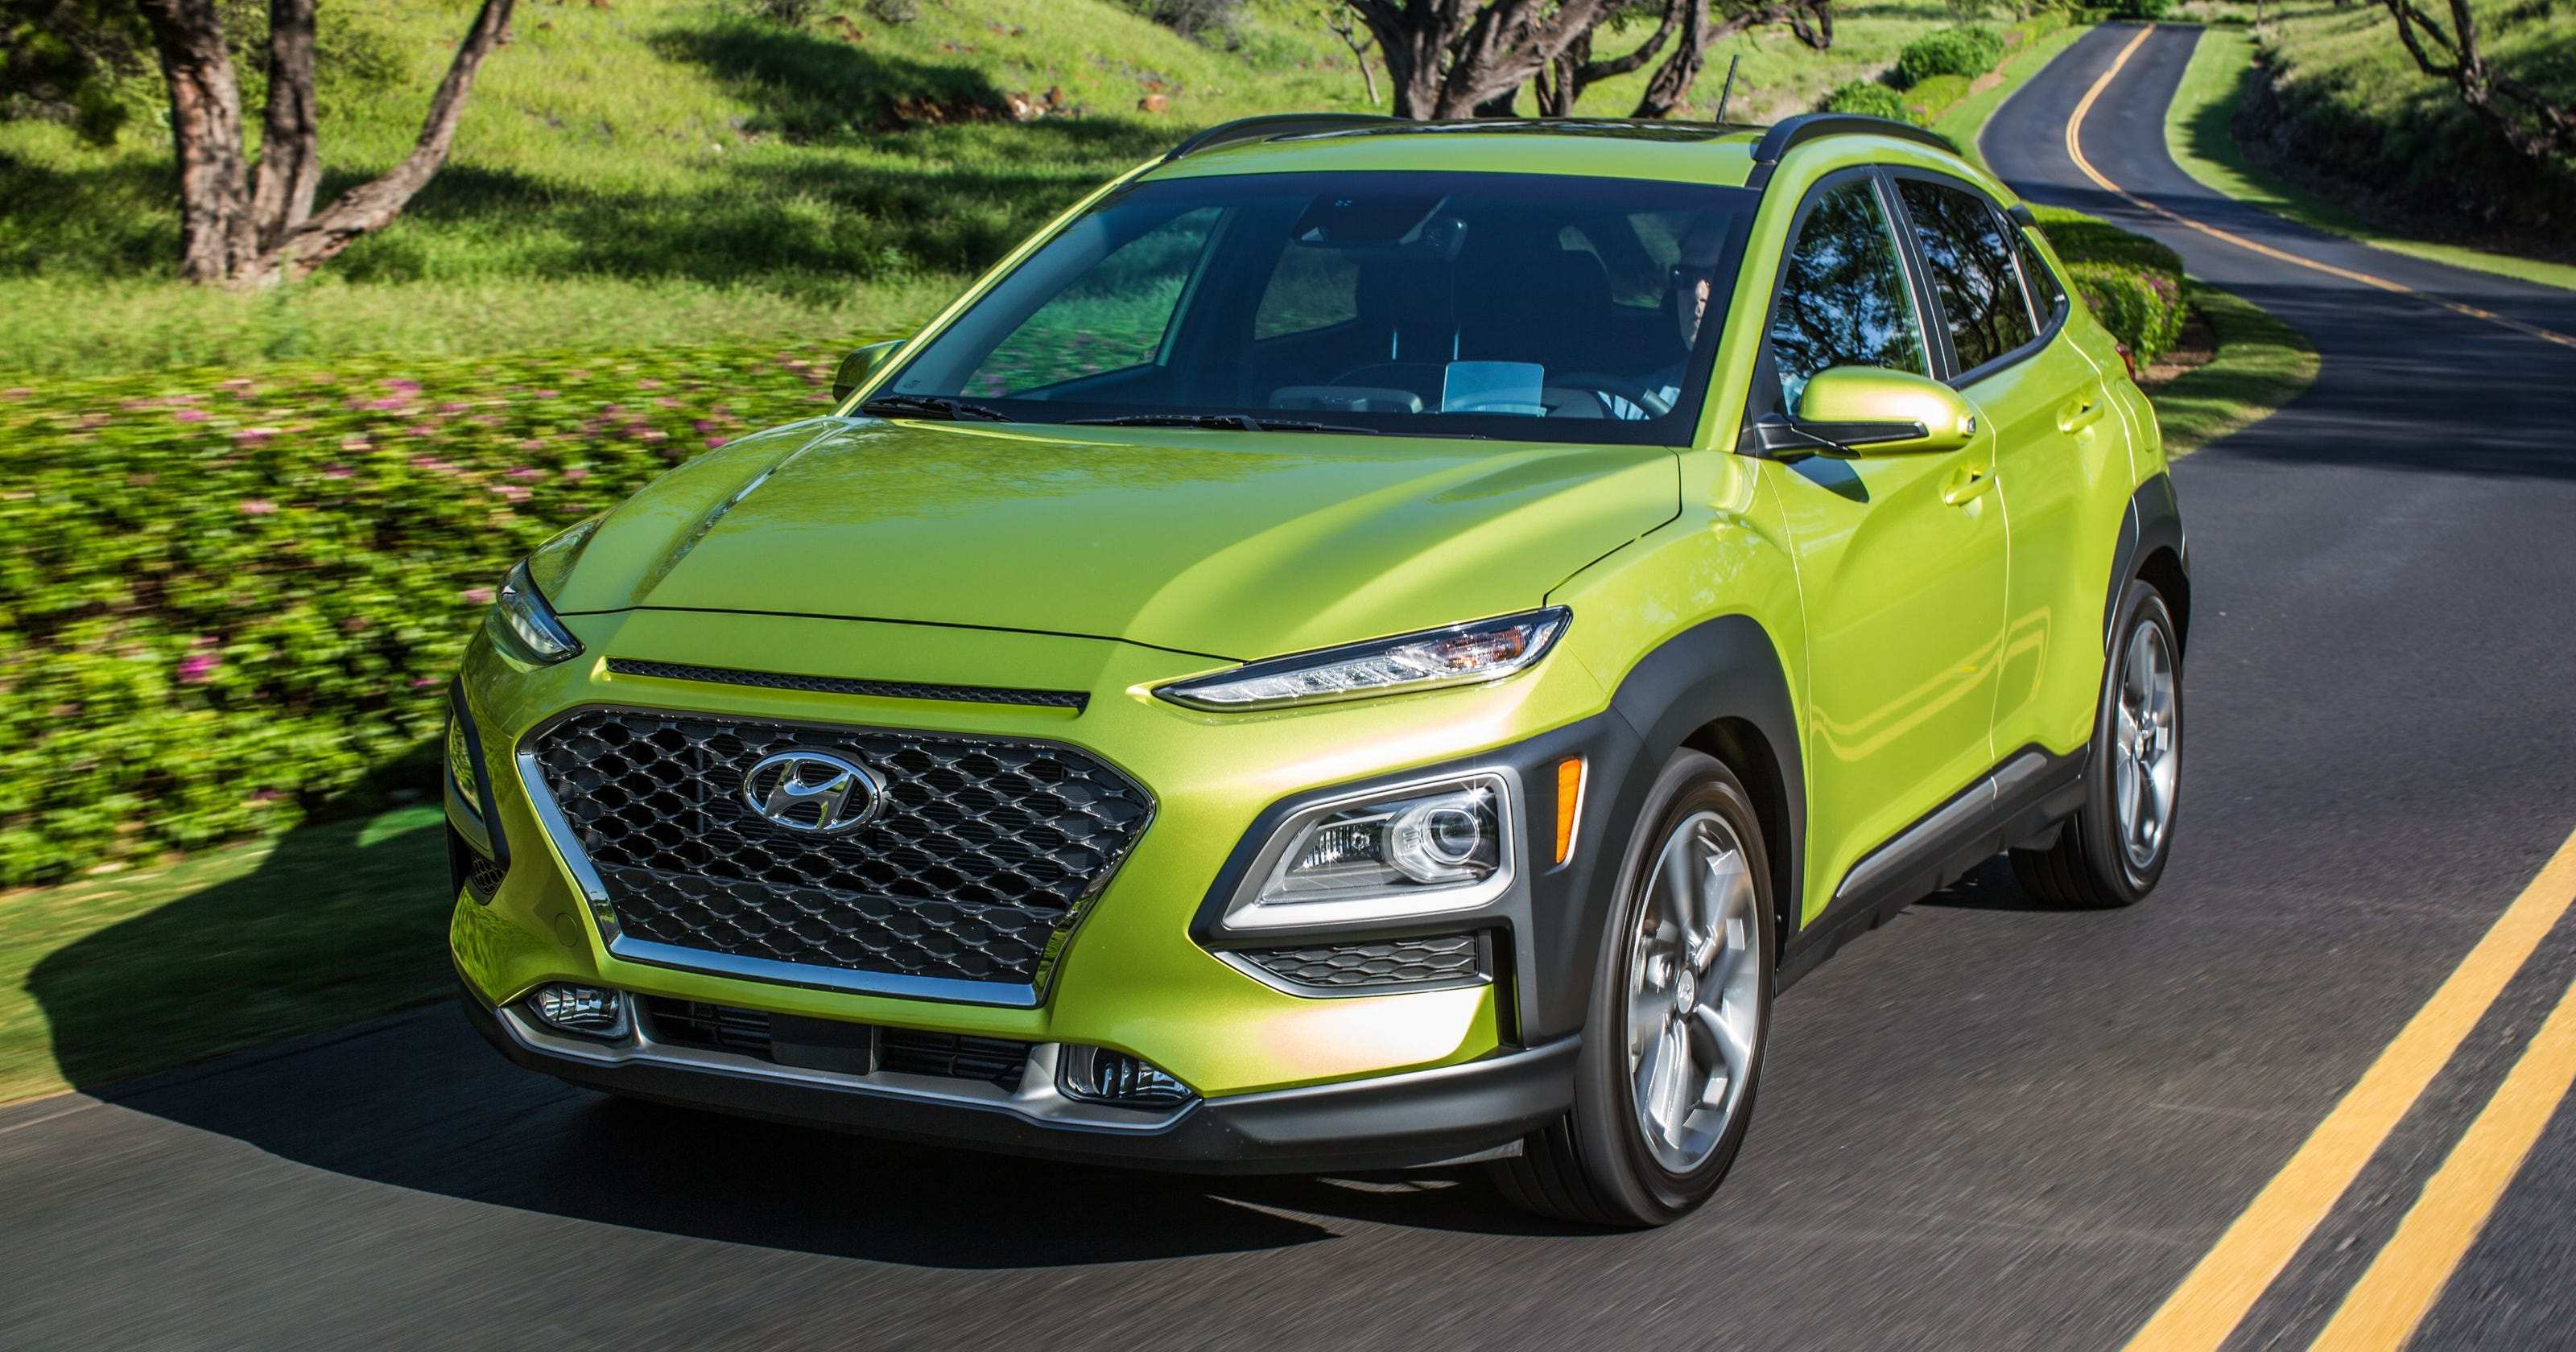 75 All New When Does The 2020 Hyundai Kona Come Out Rumors